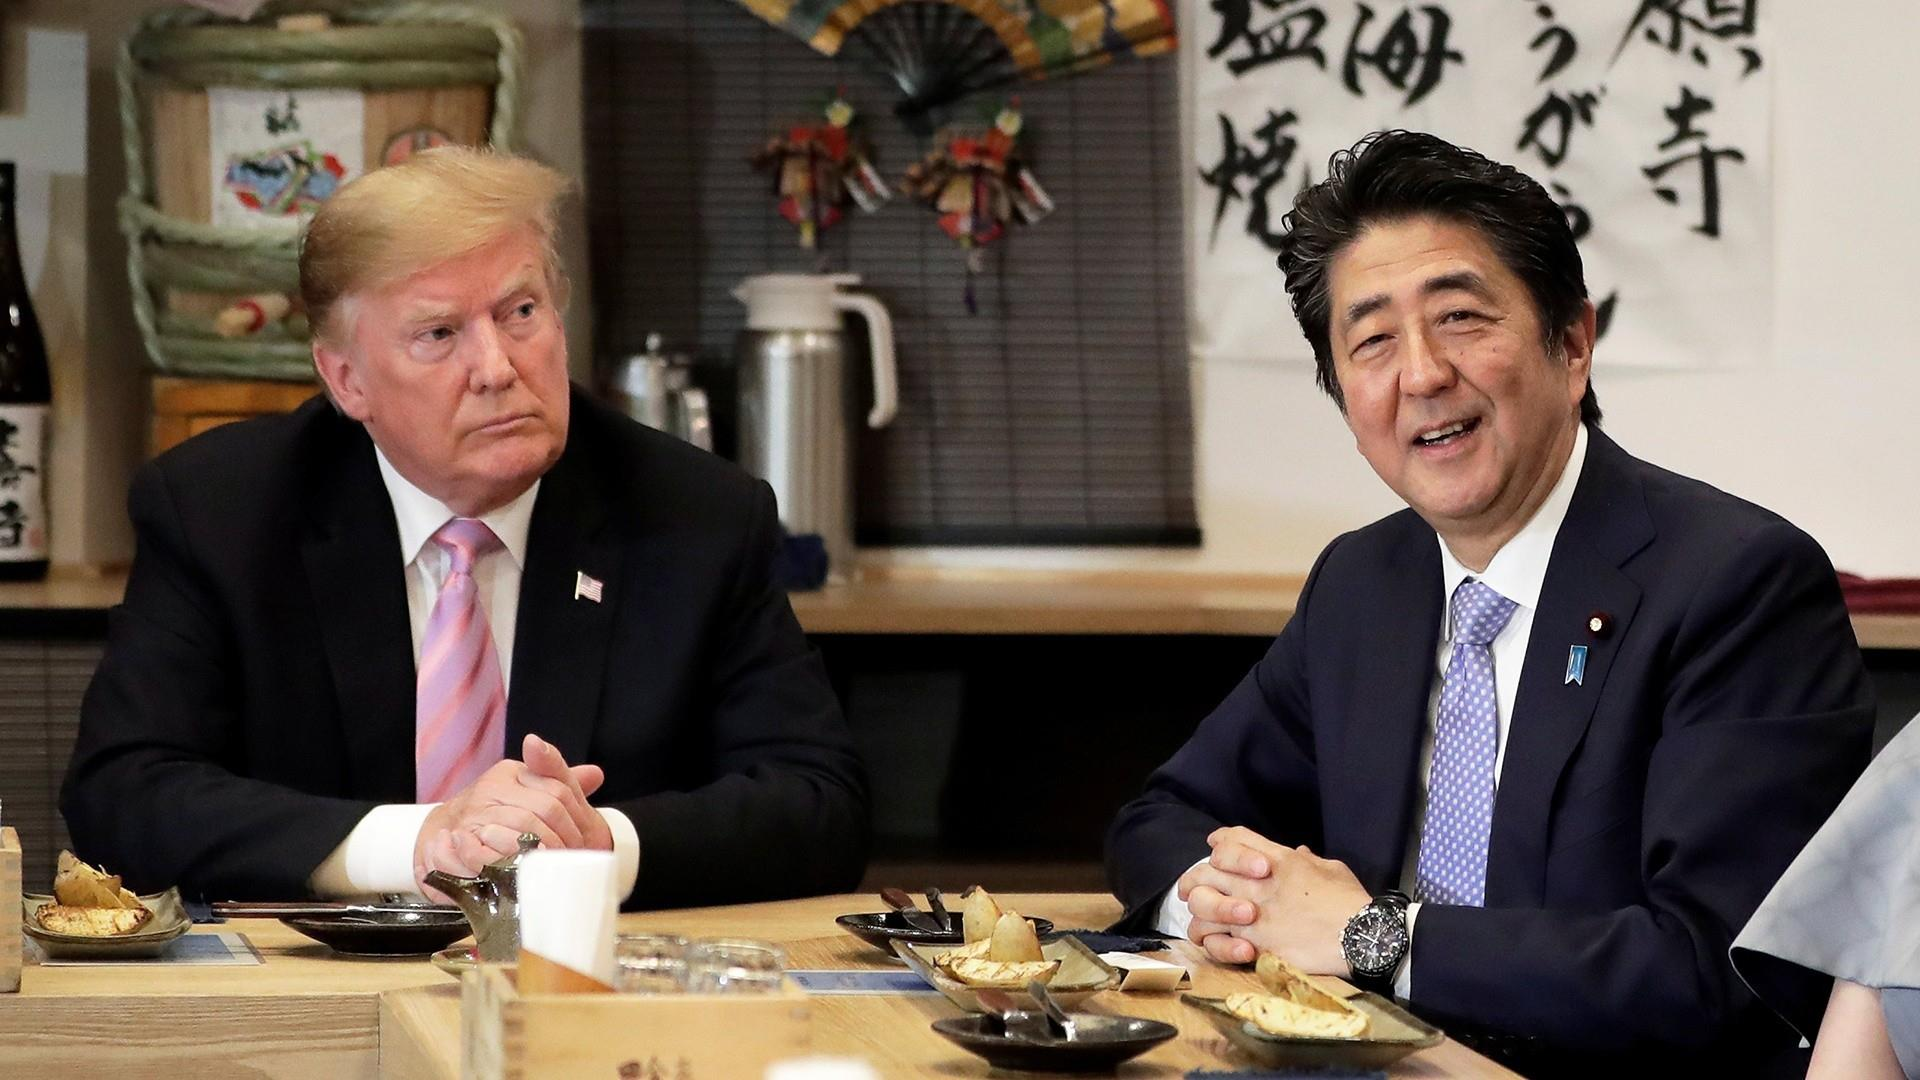 Trump plays golf, watches sumo wrestling during trip to Japan